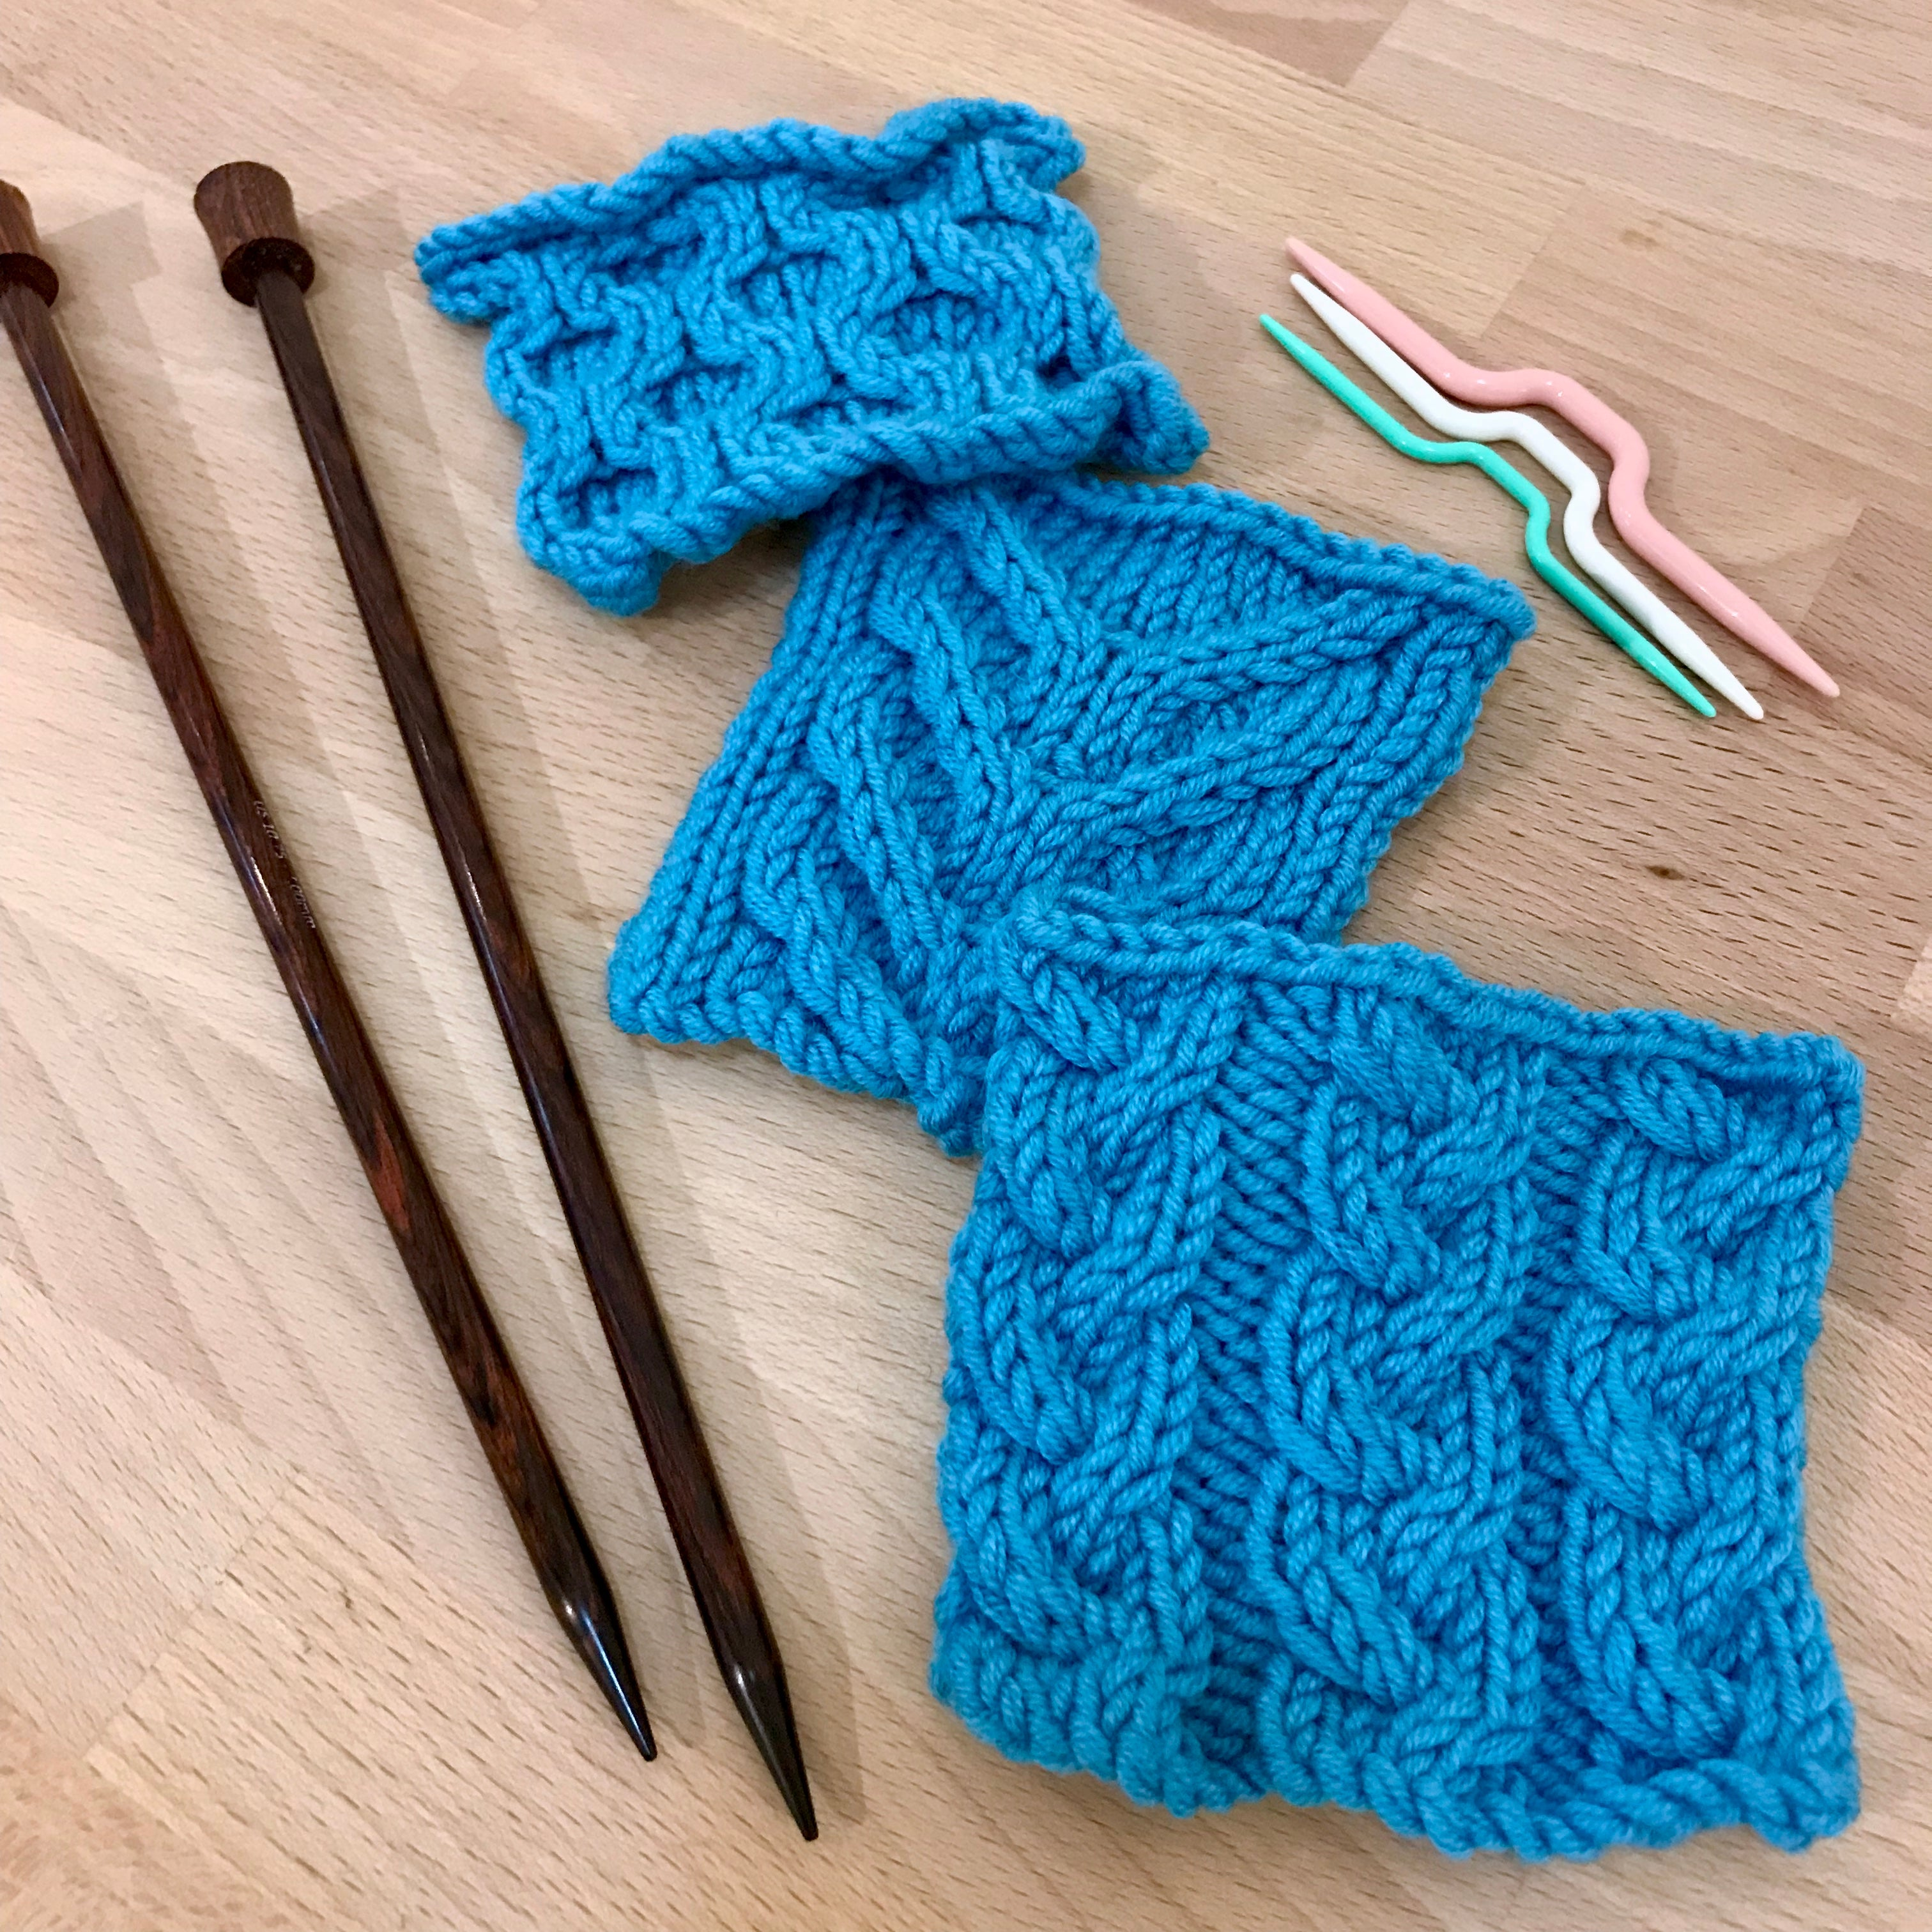 Beyond Knit & Purl: Cables